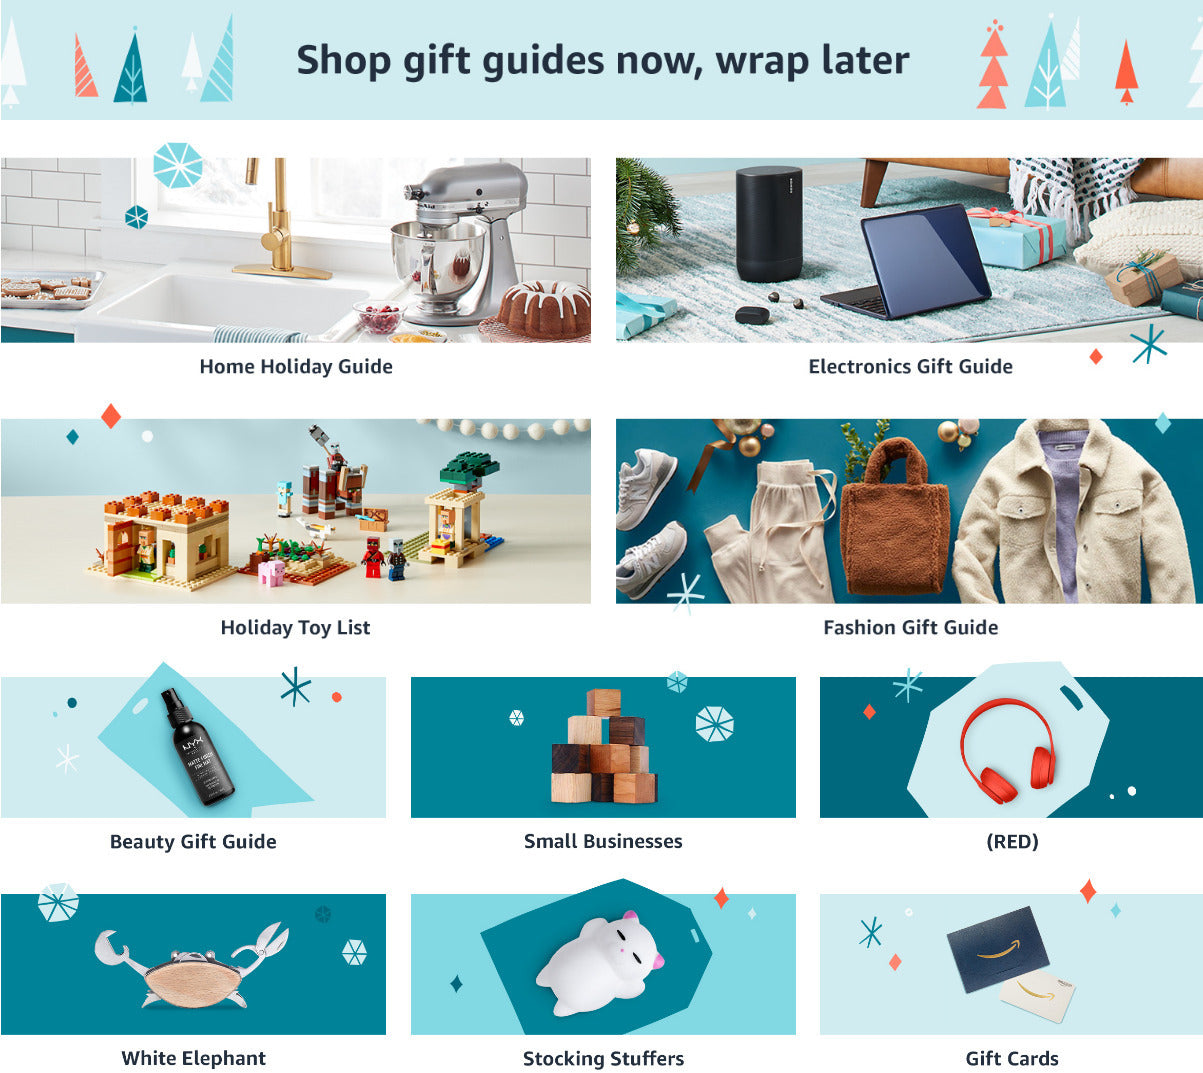 Shop Gifts for Everyone - The Amazon 2020 Holiday Guide Part 3